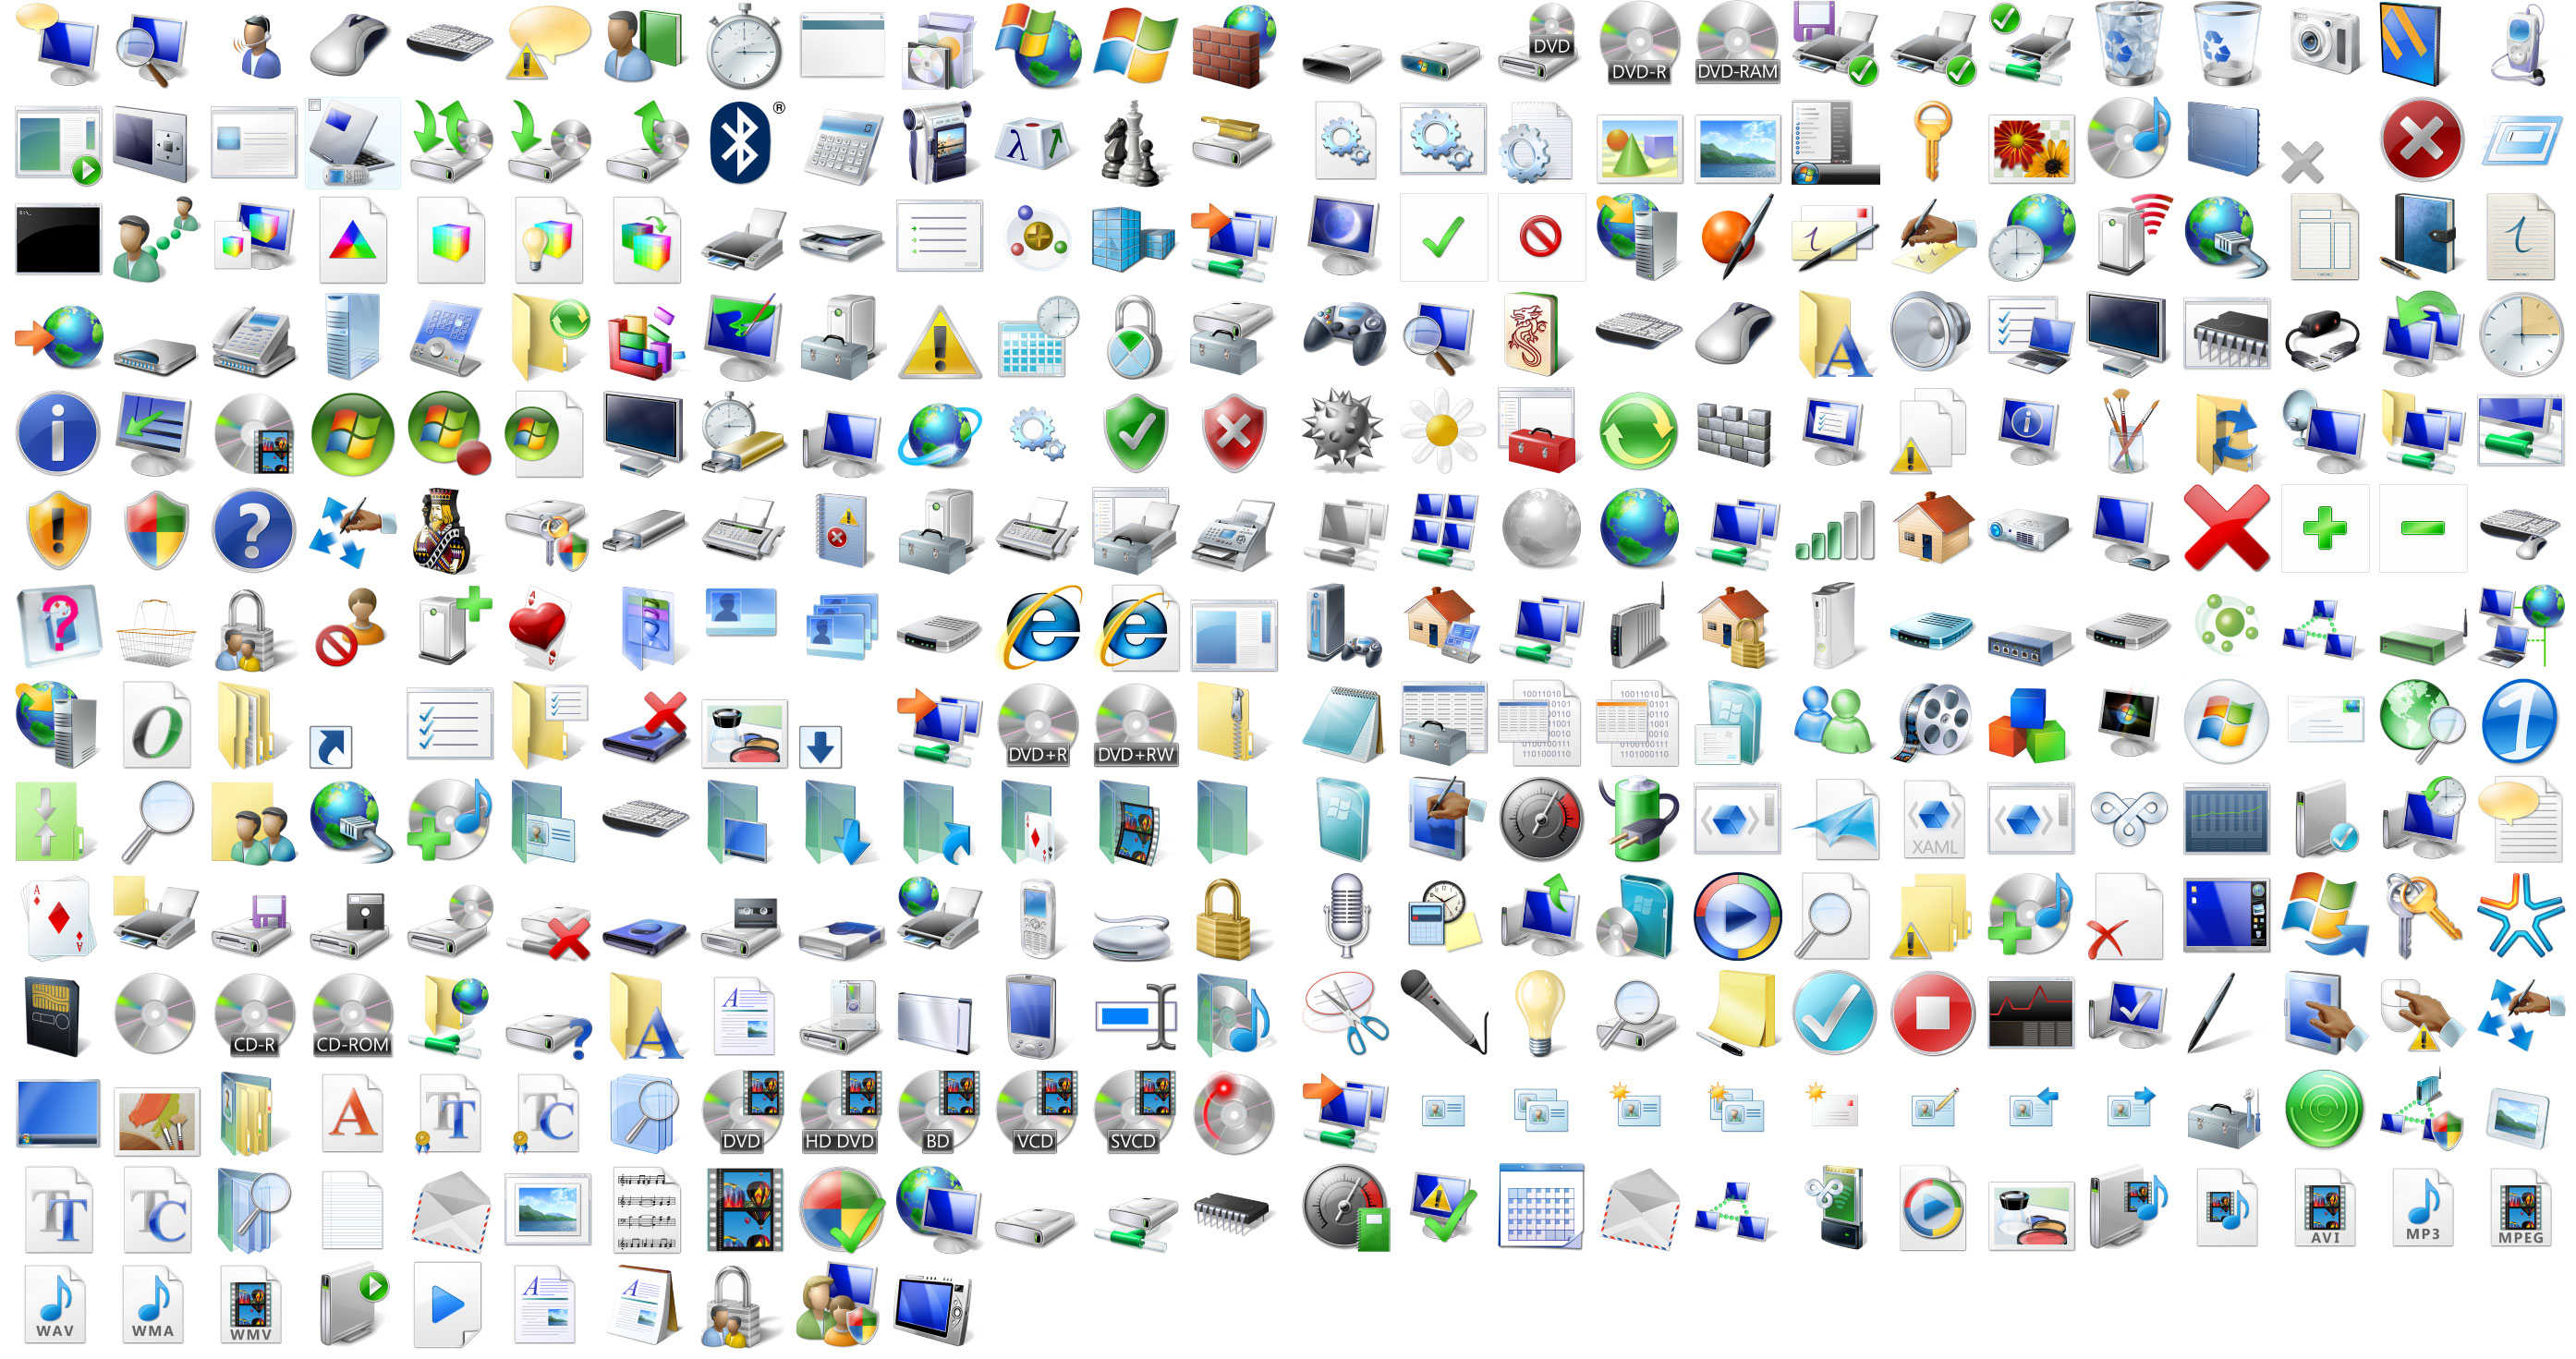 12 Vista Icons For Windows 7 Images